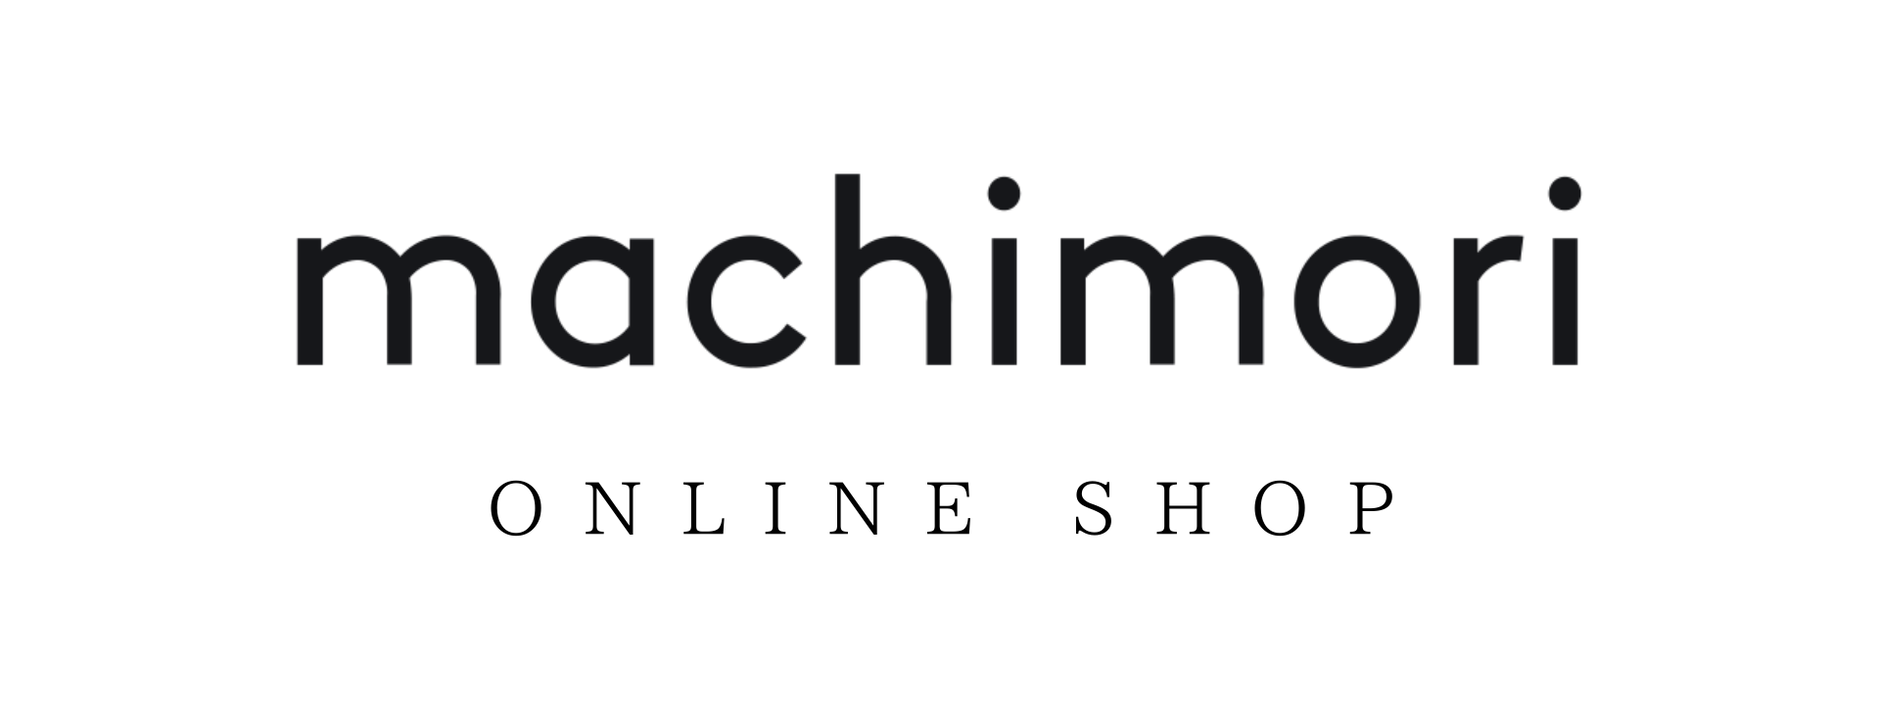 machimori ONLINE SHOP|ATAMI